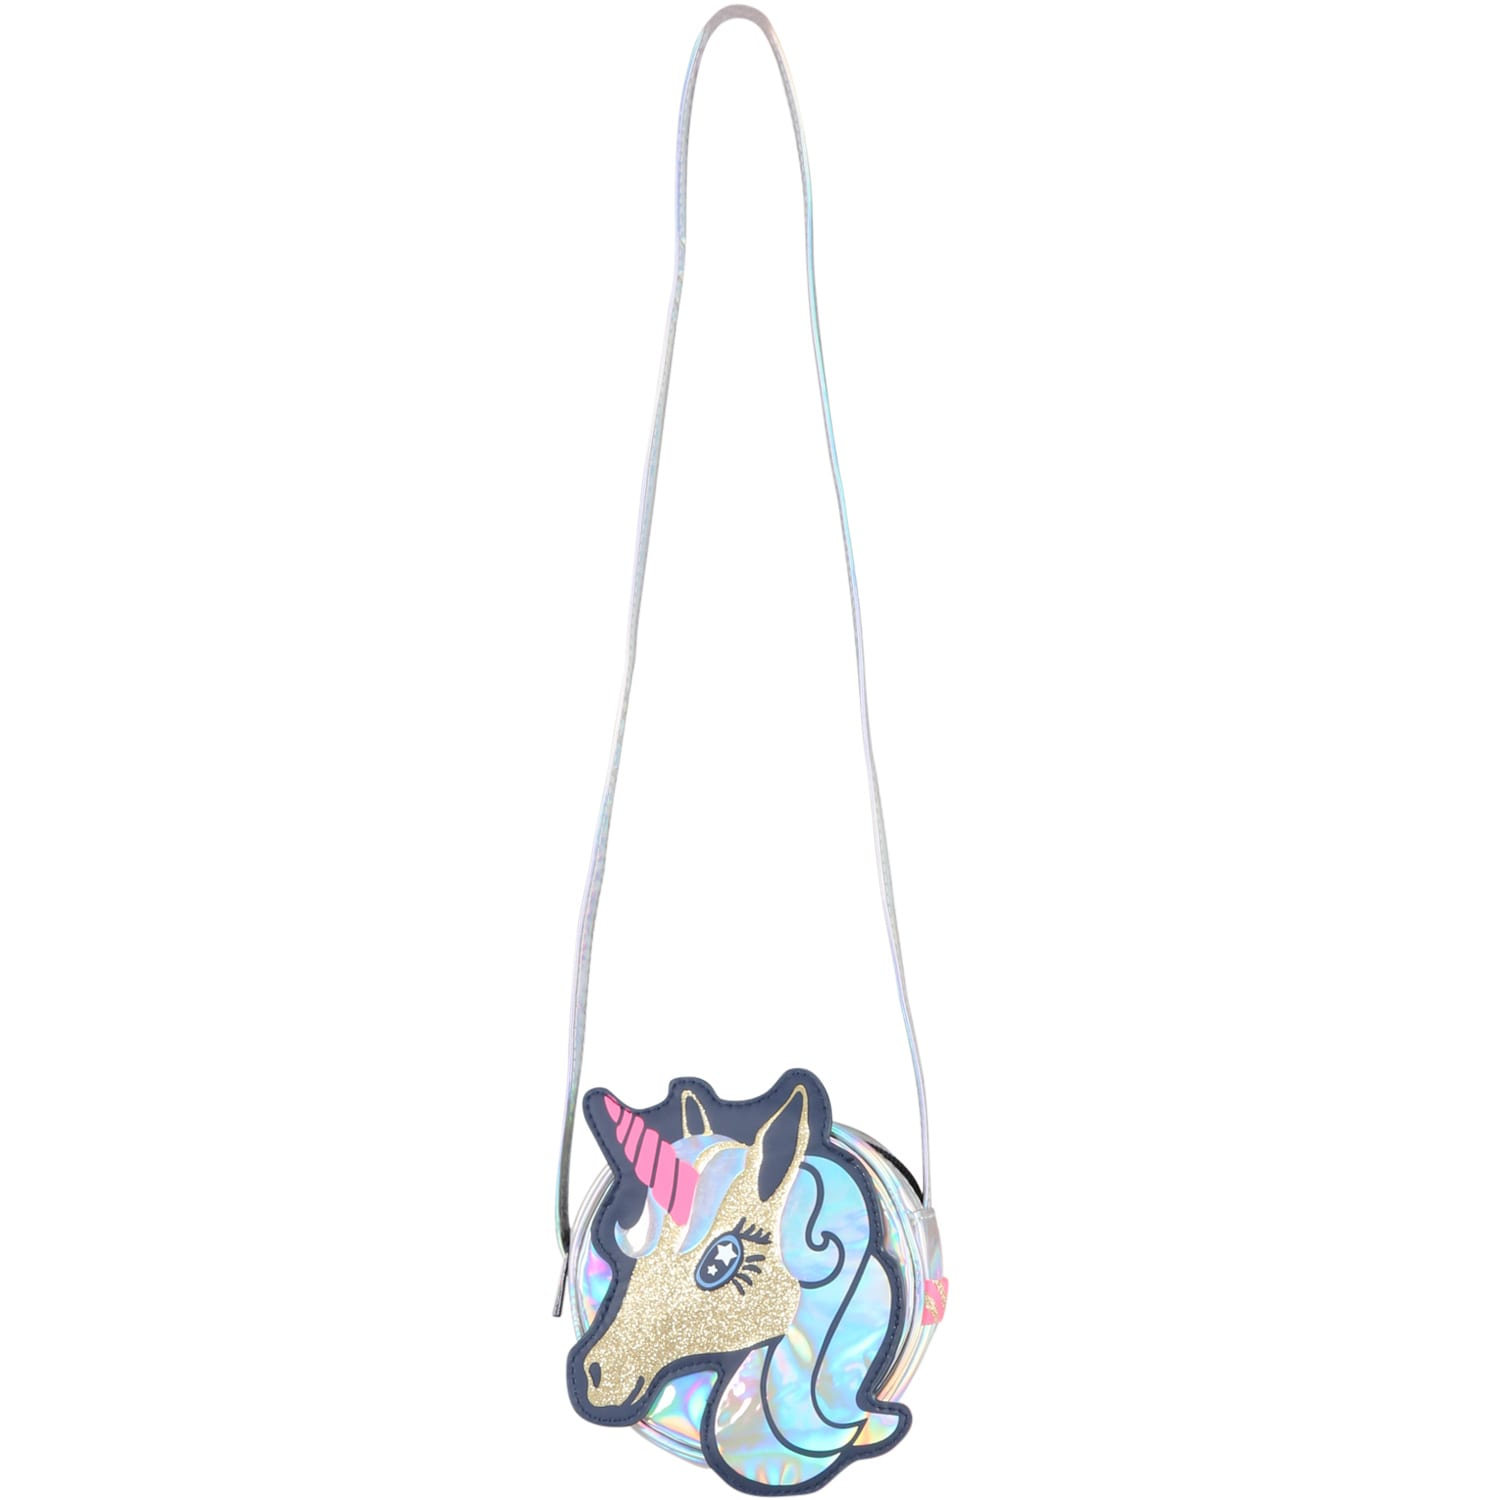 Silver Bag For Girl With Unicorn